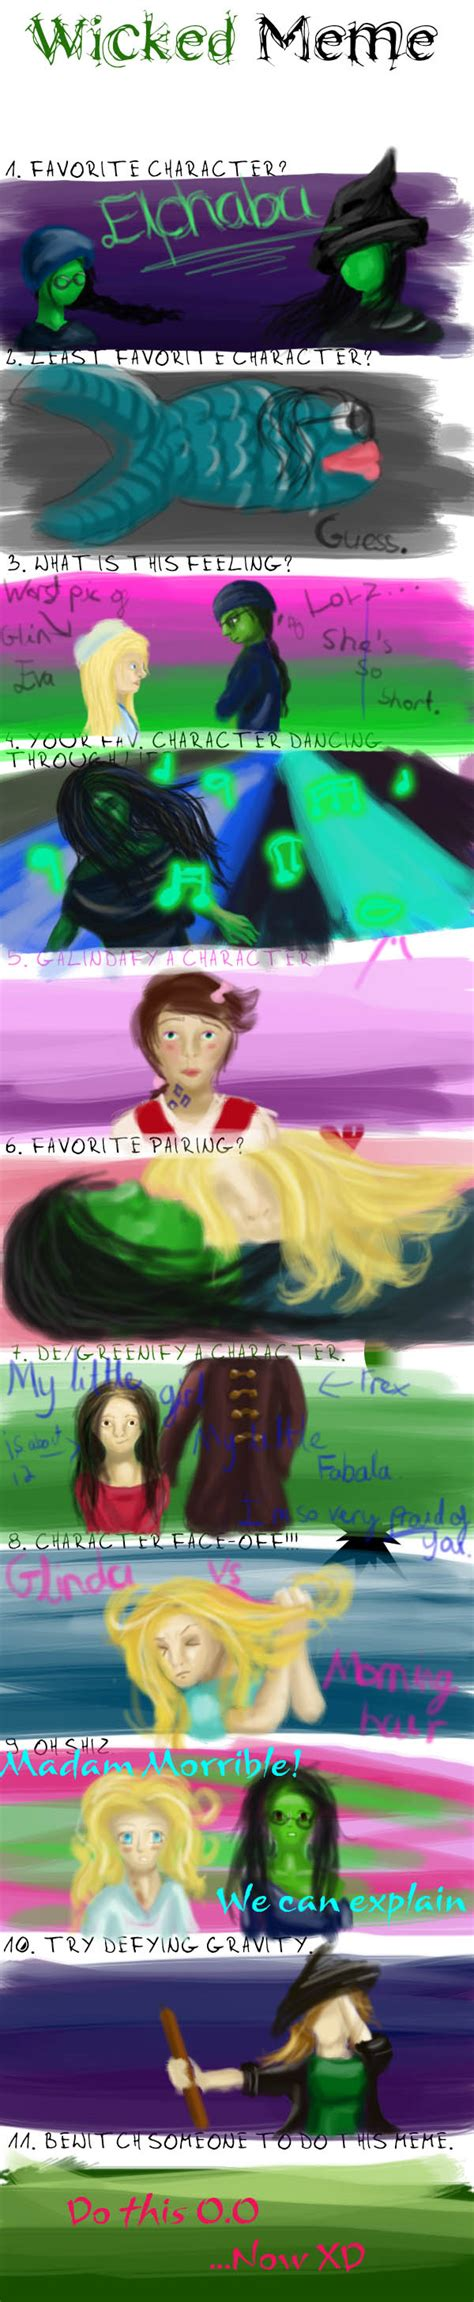 Wicked The Musical Memes - new wicked meme by jeminisoul on deviantart